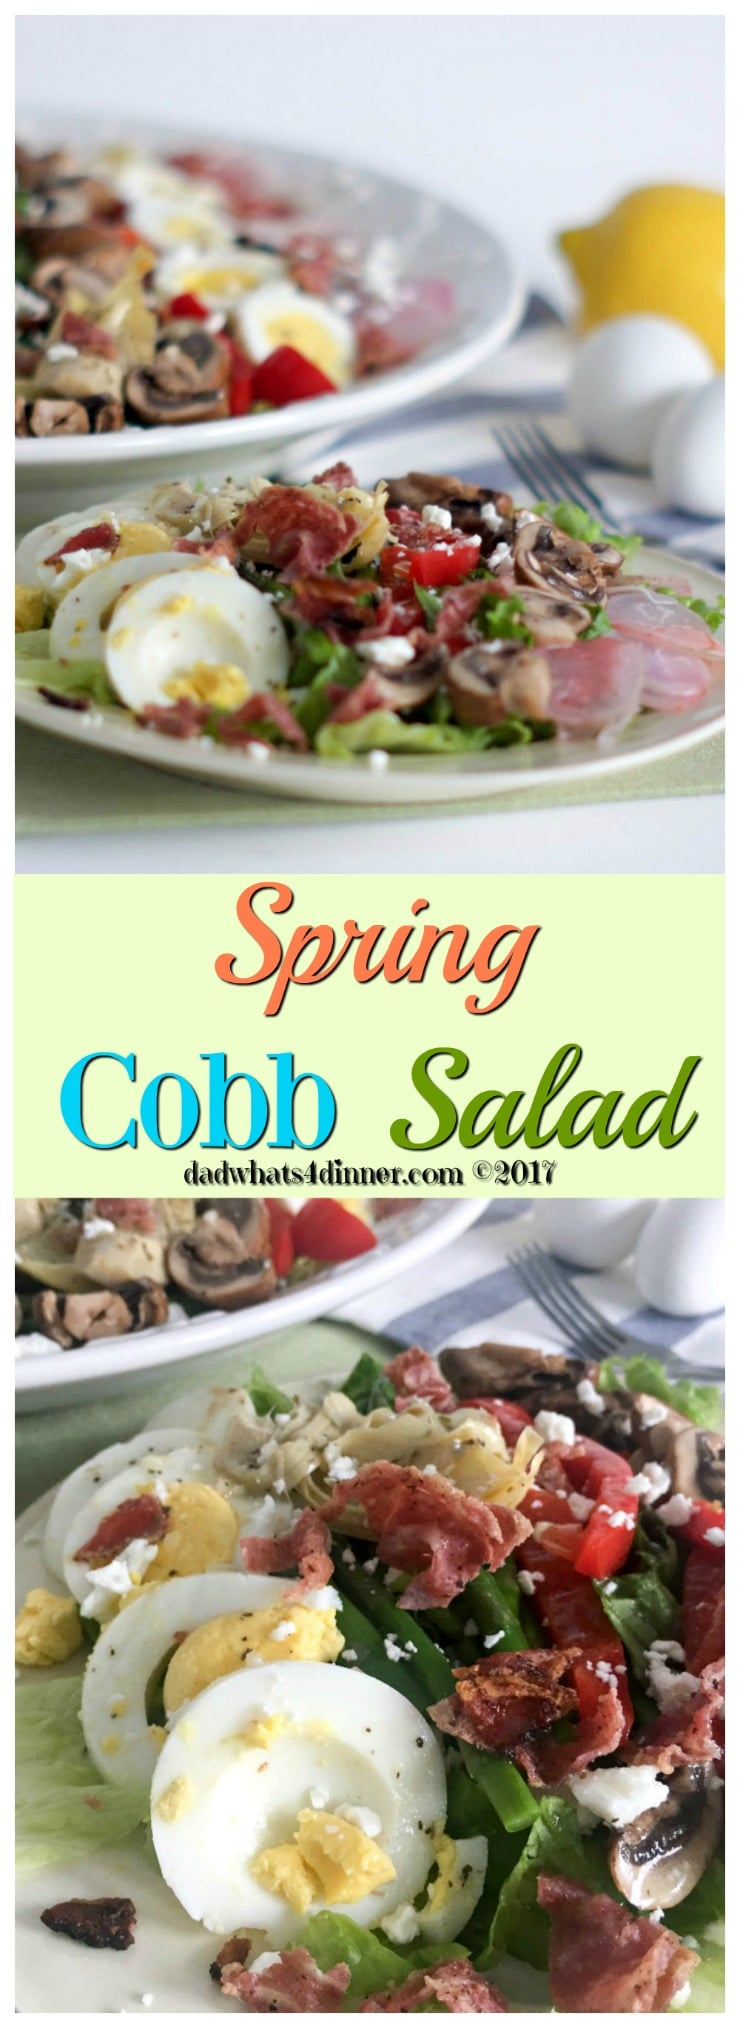 My Spring Veggie Cobb Salad takes advantage of the fresh produce of spring. Perfect for Easter, Mother's Day, a wedding shower or grill out!